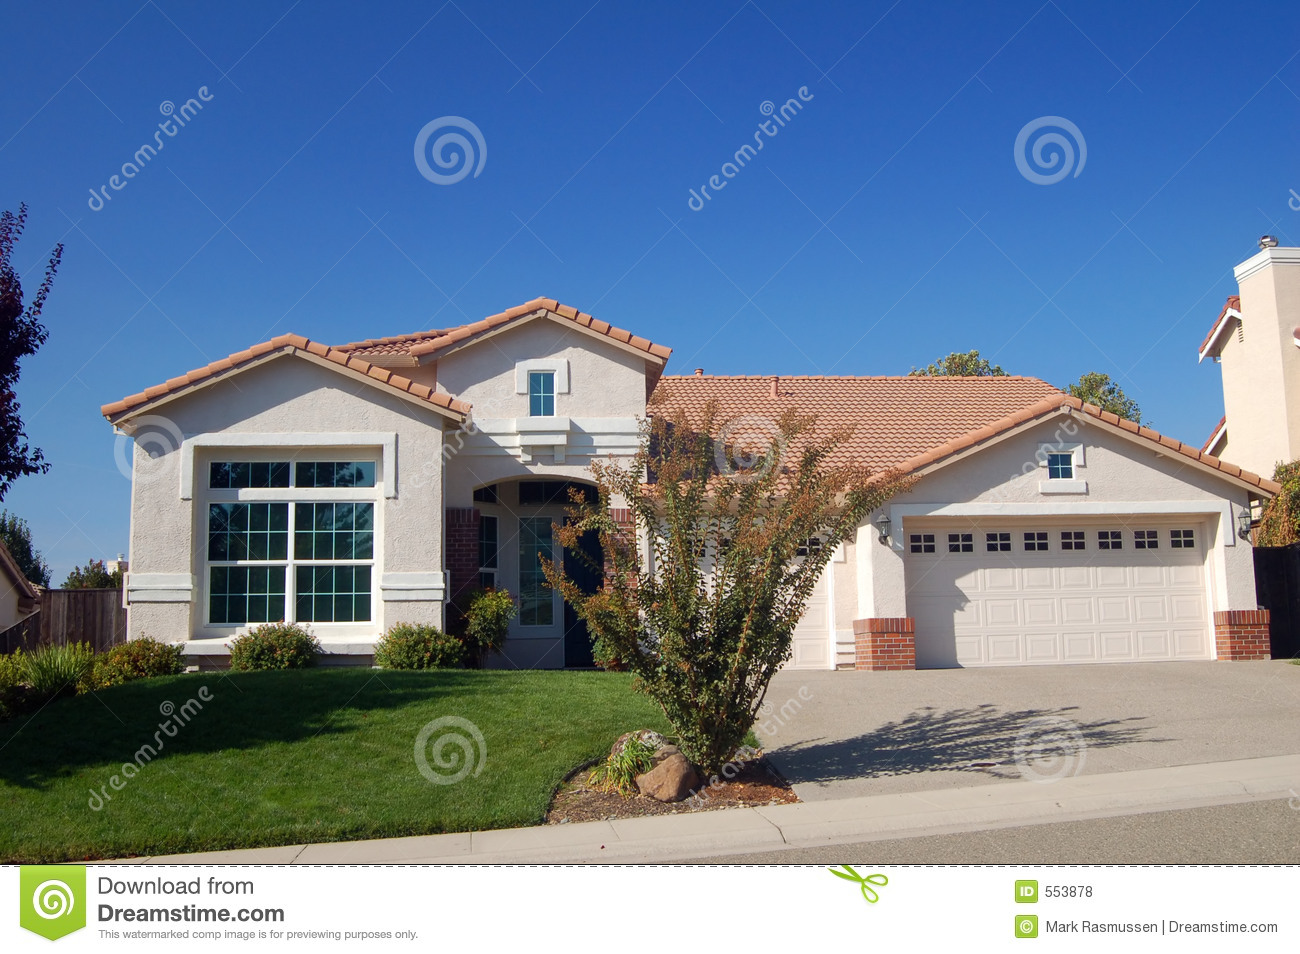 Suburban house royalty free stock photos image 553878 for Free house photos